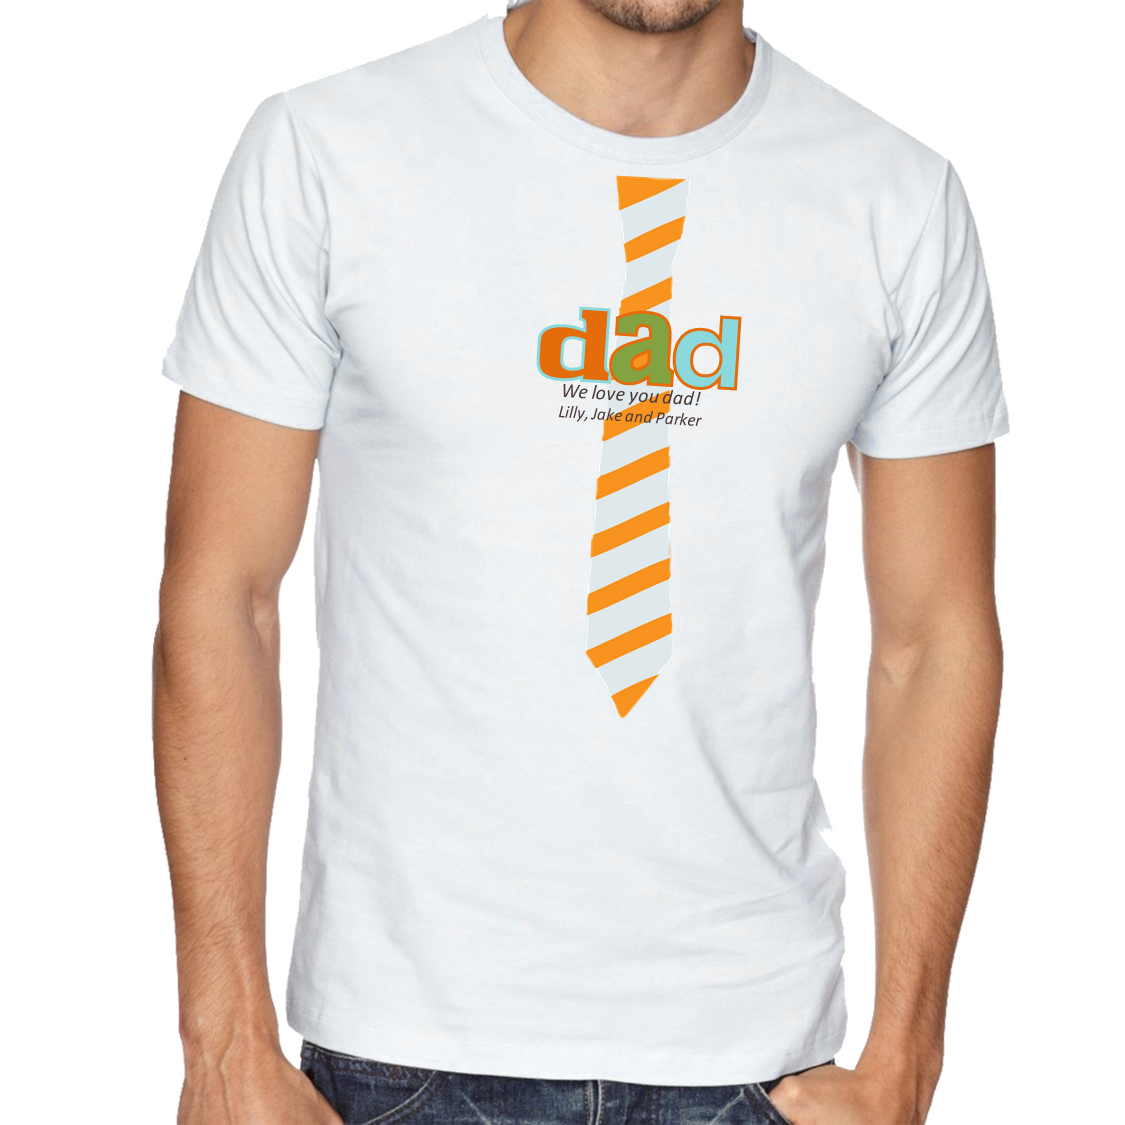 ff2ceb56 Personalized Father's Day T-Shirt